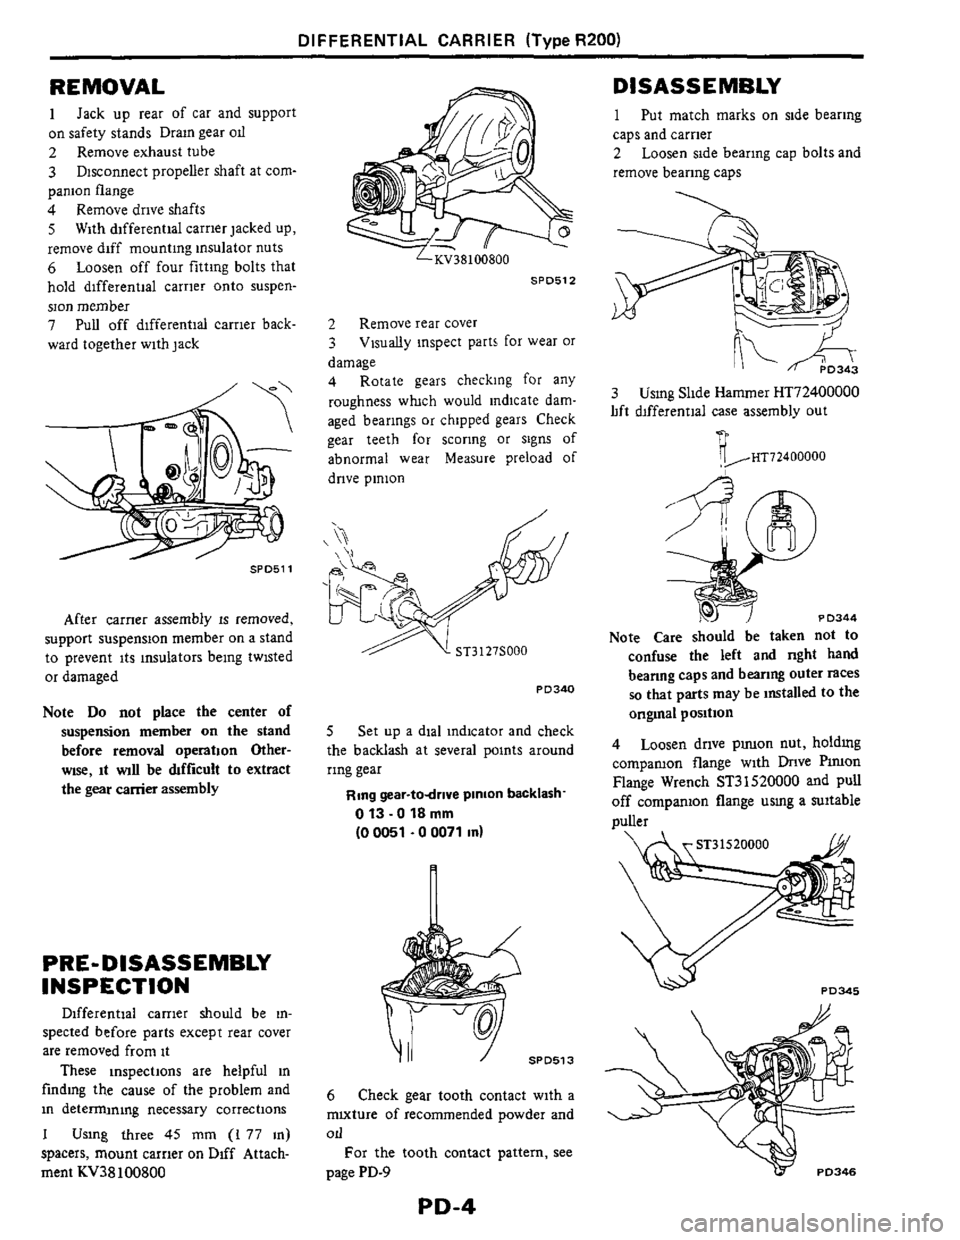 NISSAN 300ZX 1984 Z31 Propeller Shaft And Differential Carrier Workshop Manual, Page 4